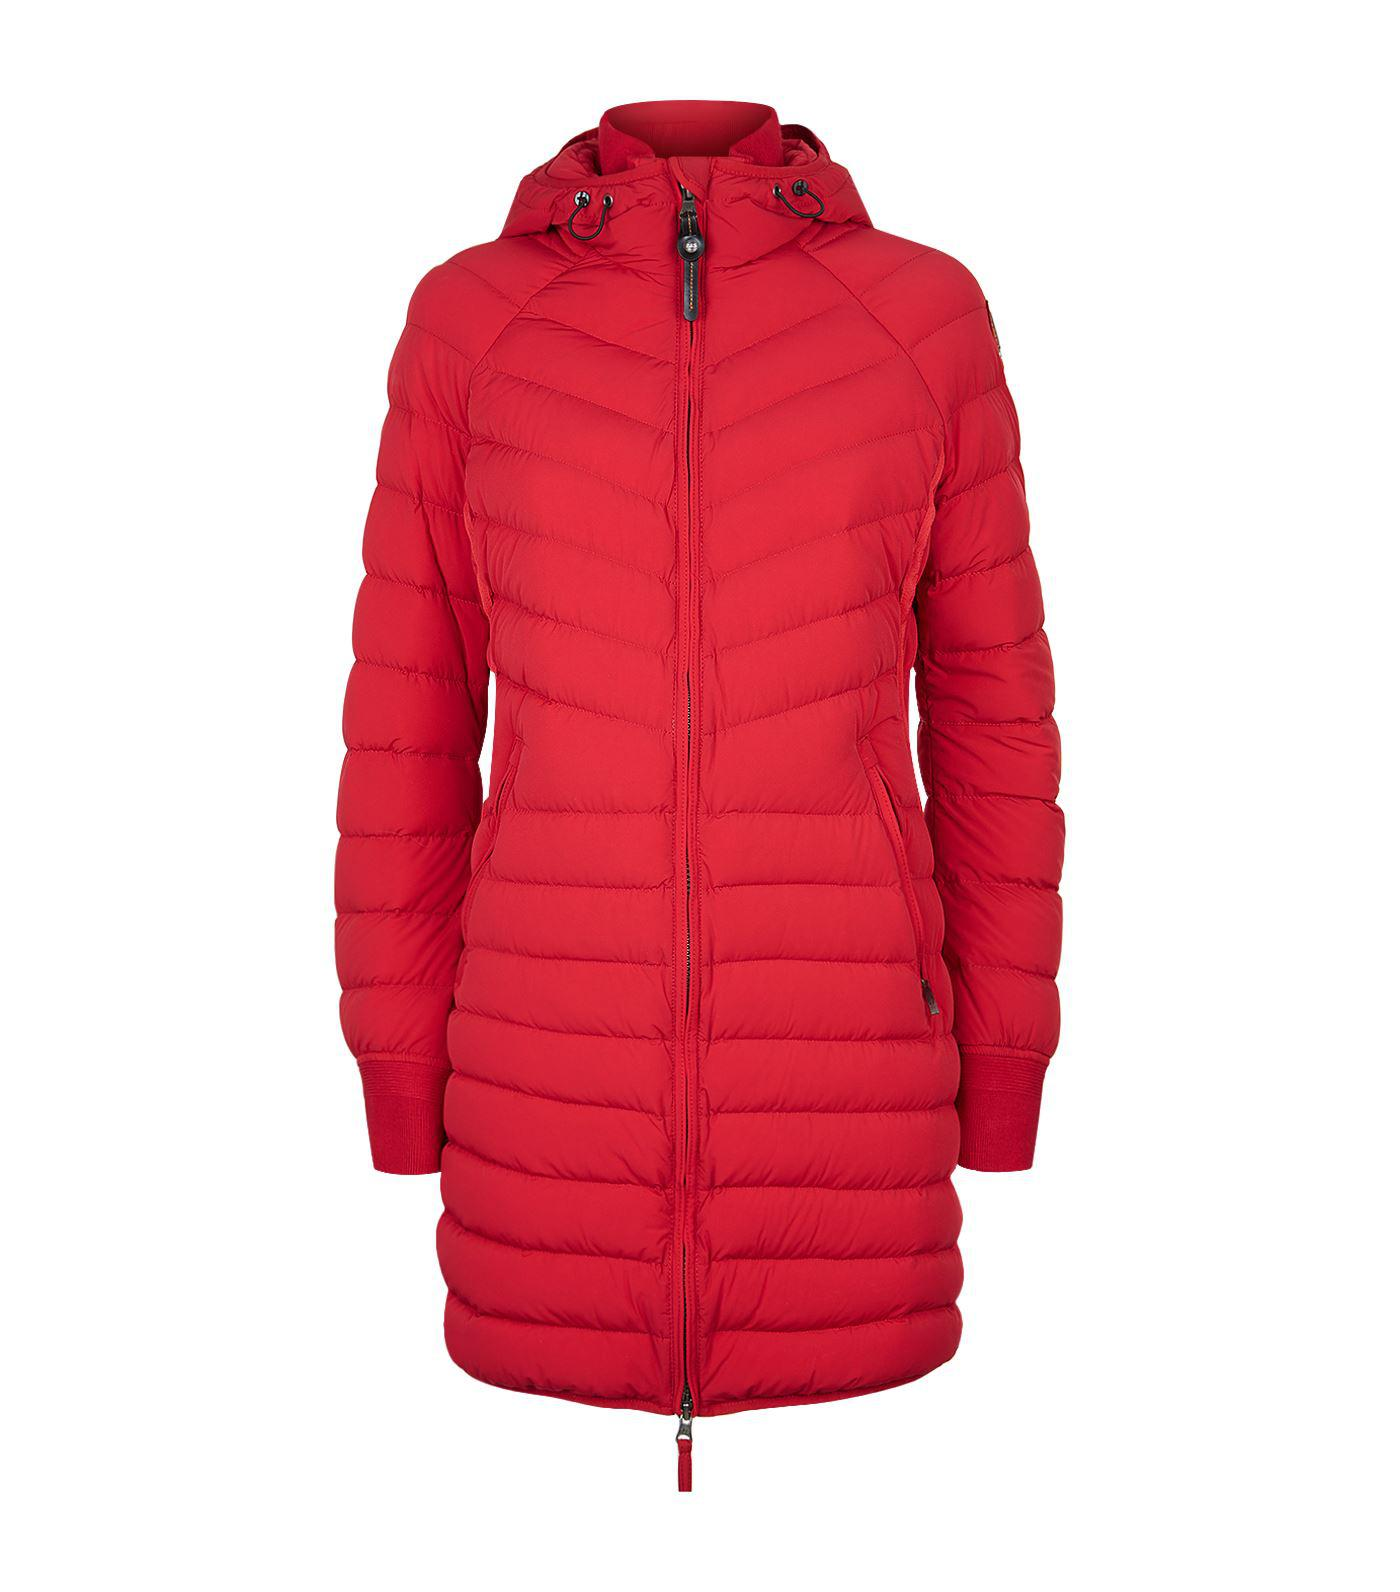 Parajumpers. Women's Red April Long Puffer Jacket